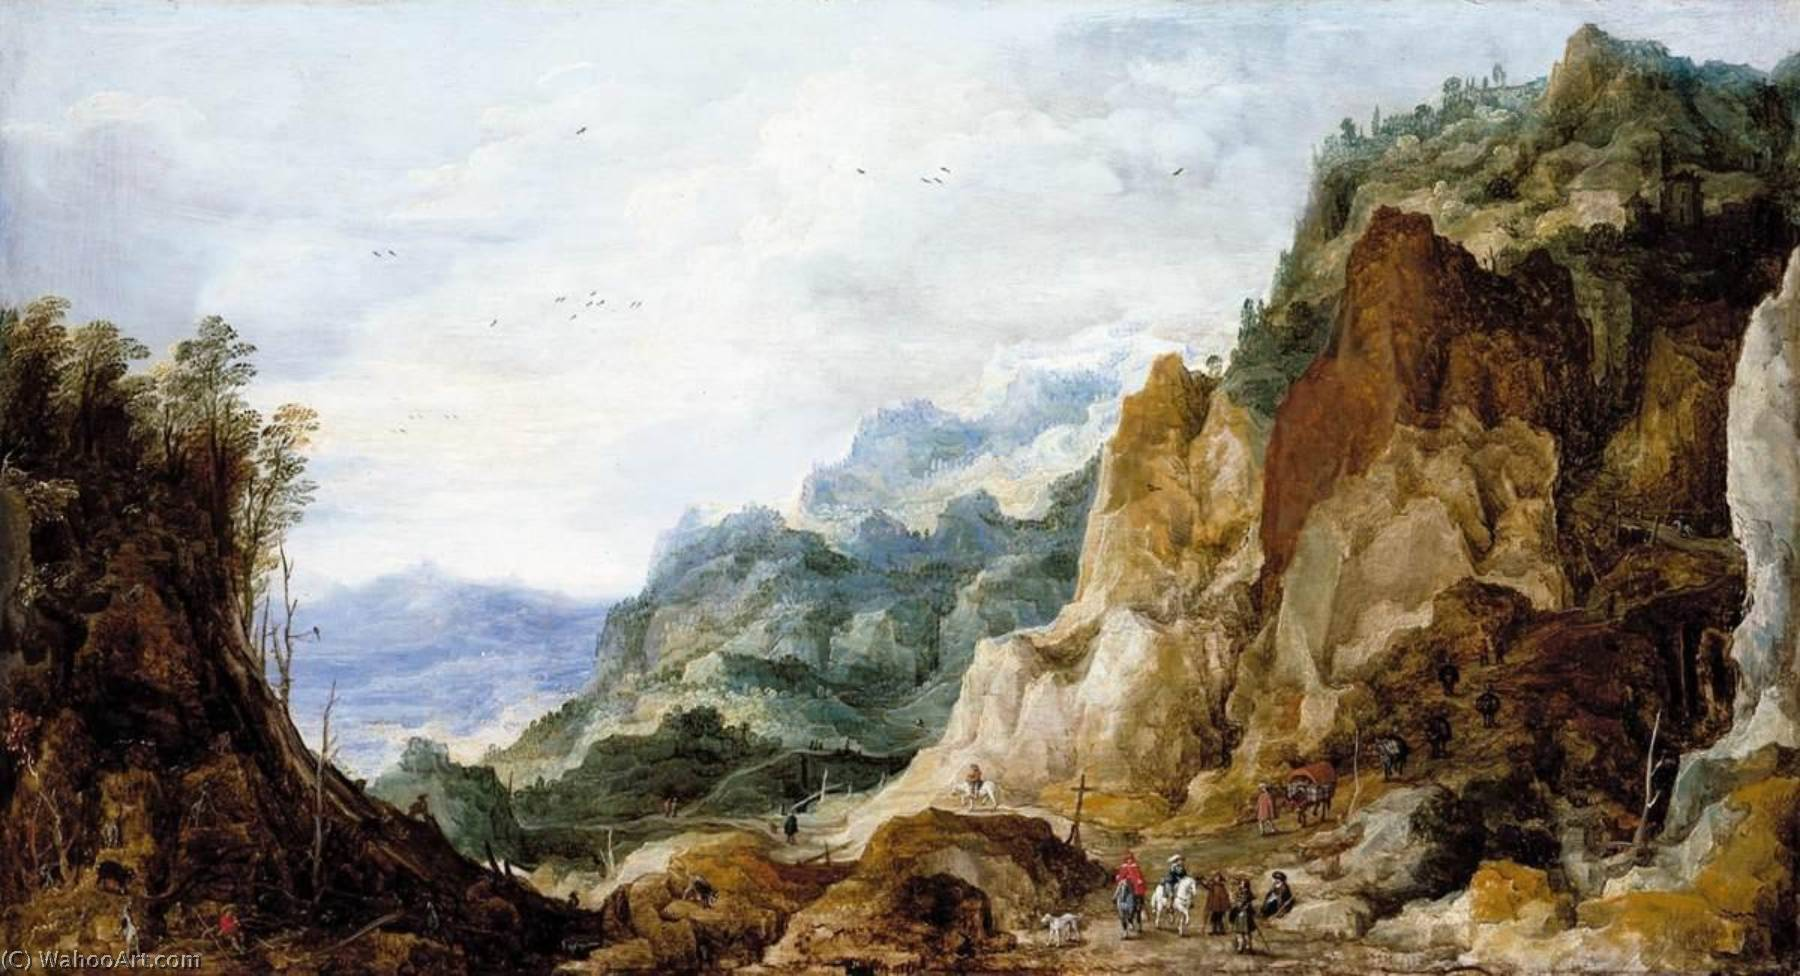 Mountainous Landscape, 1623 by Joos De Momper The Younger (1564-1635) | Art Reproduction | WahooArt.com